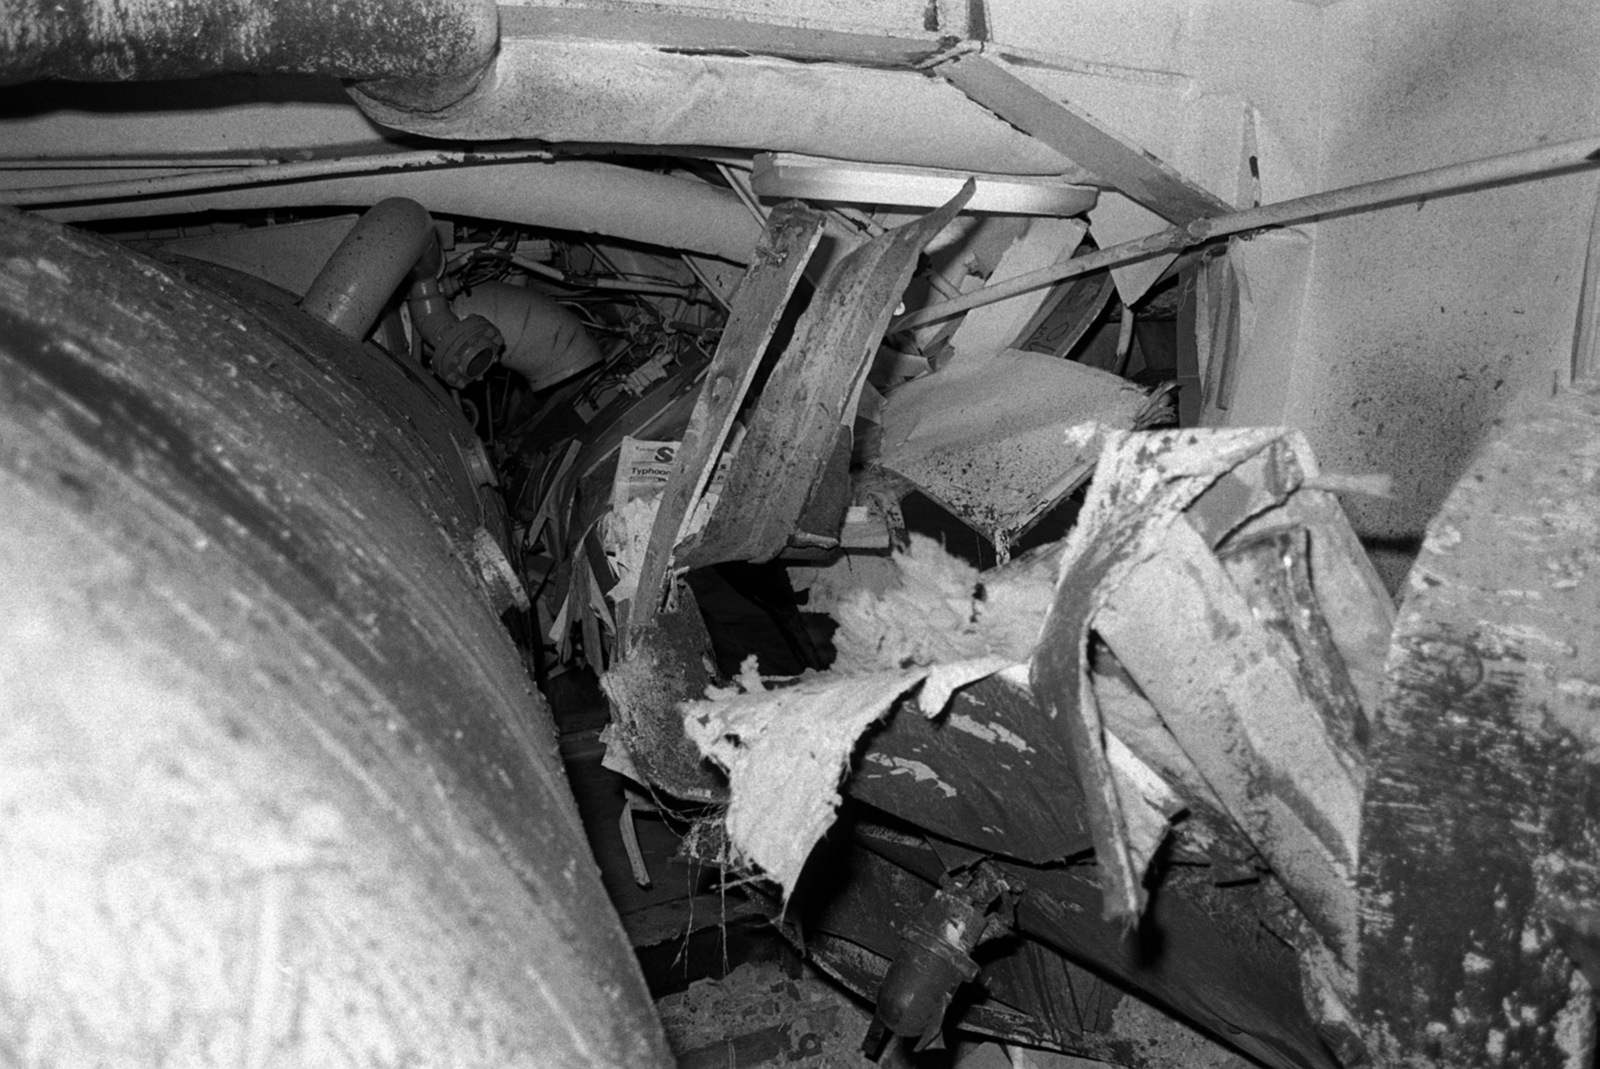 An interior view of damage caused to the aircraft carrier USS MIDWAY (CV41) in a collision with the Panamanian freighter CACTUS